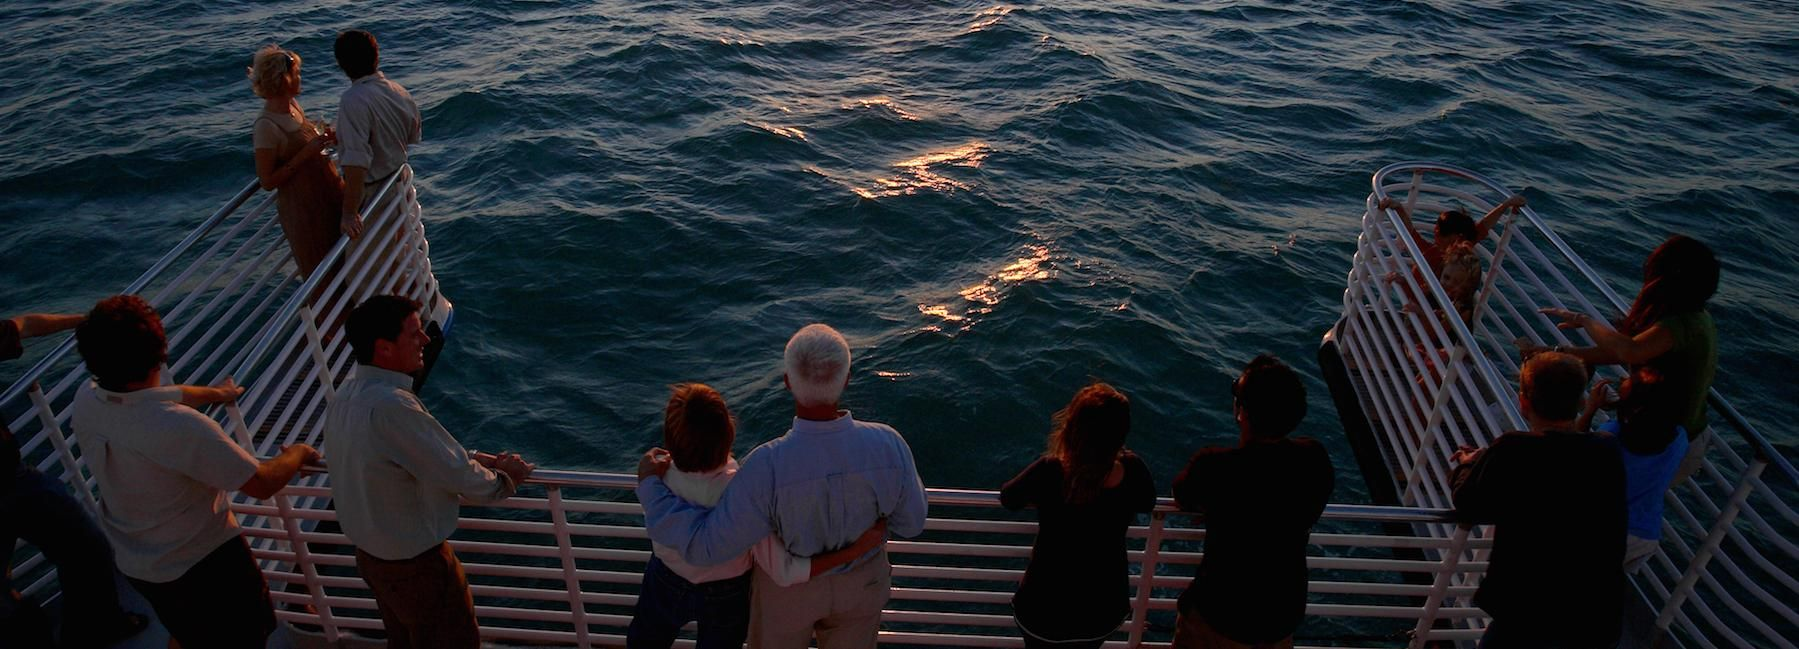 Key West: Glass-Bottom Boat Sunset Cruise and Reef Tour